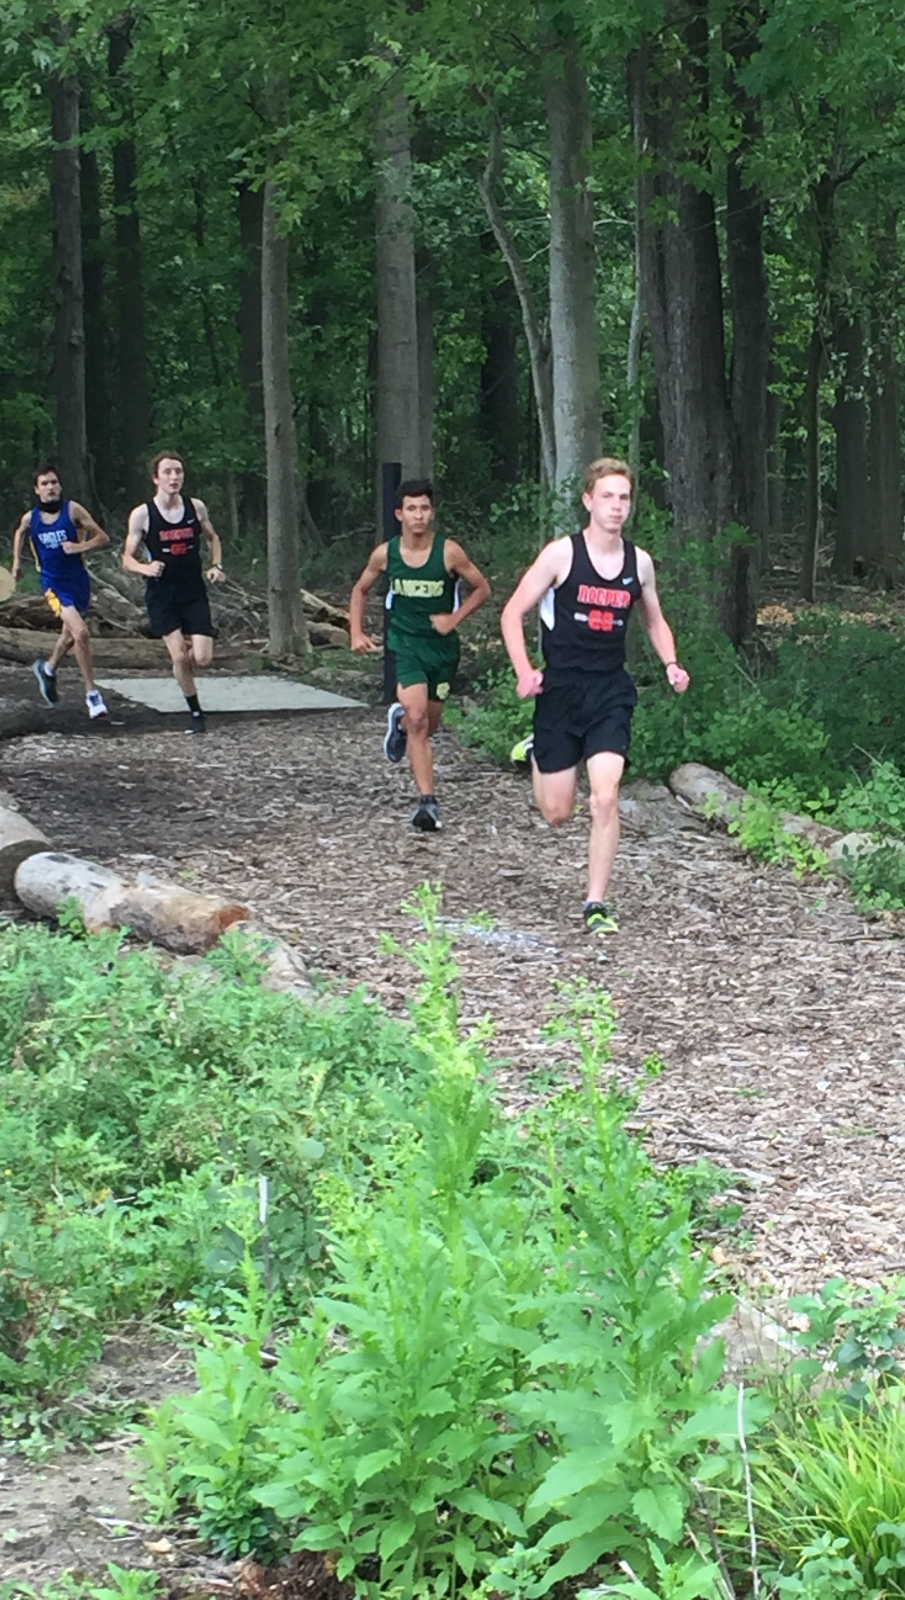 Season Starts for Roughrider Harriers